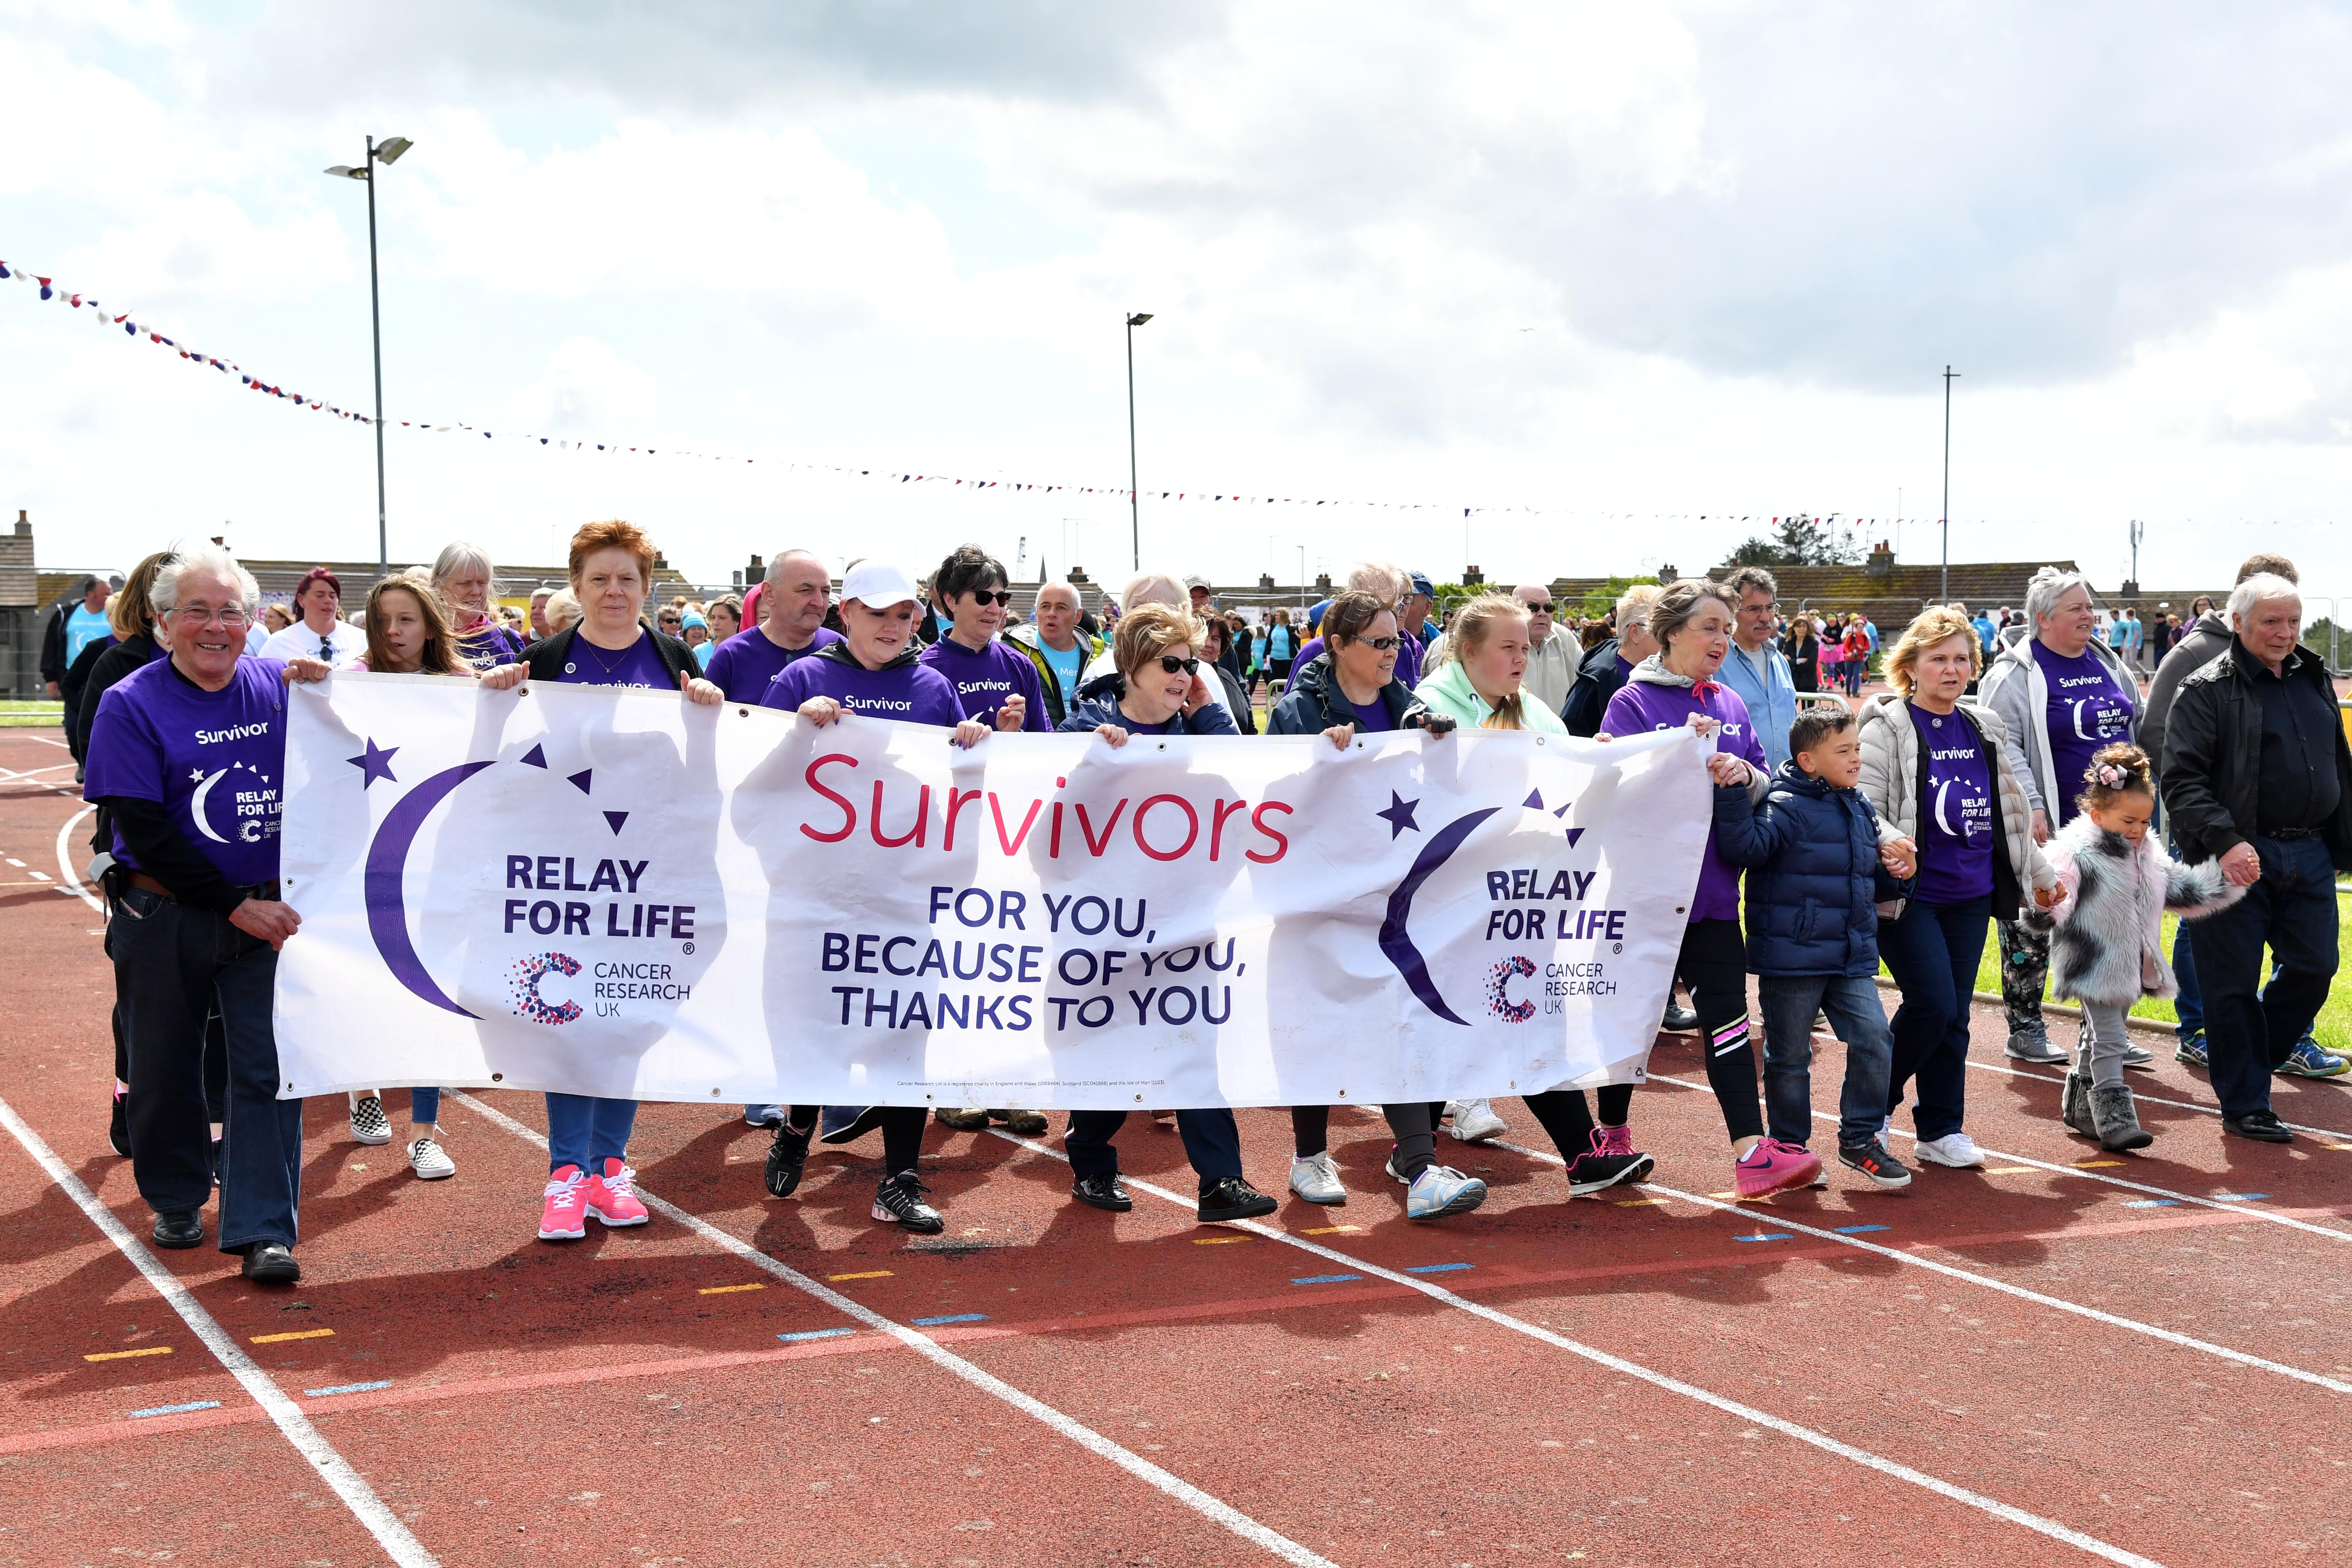 Relay for Life at Catto Park in Peterhead.